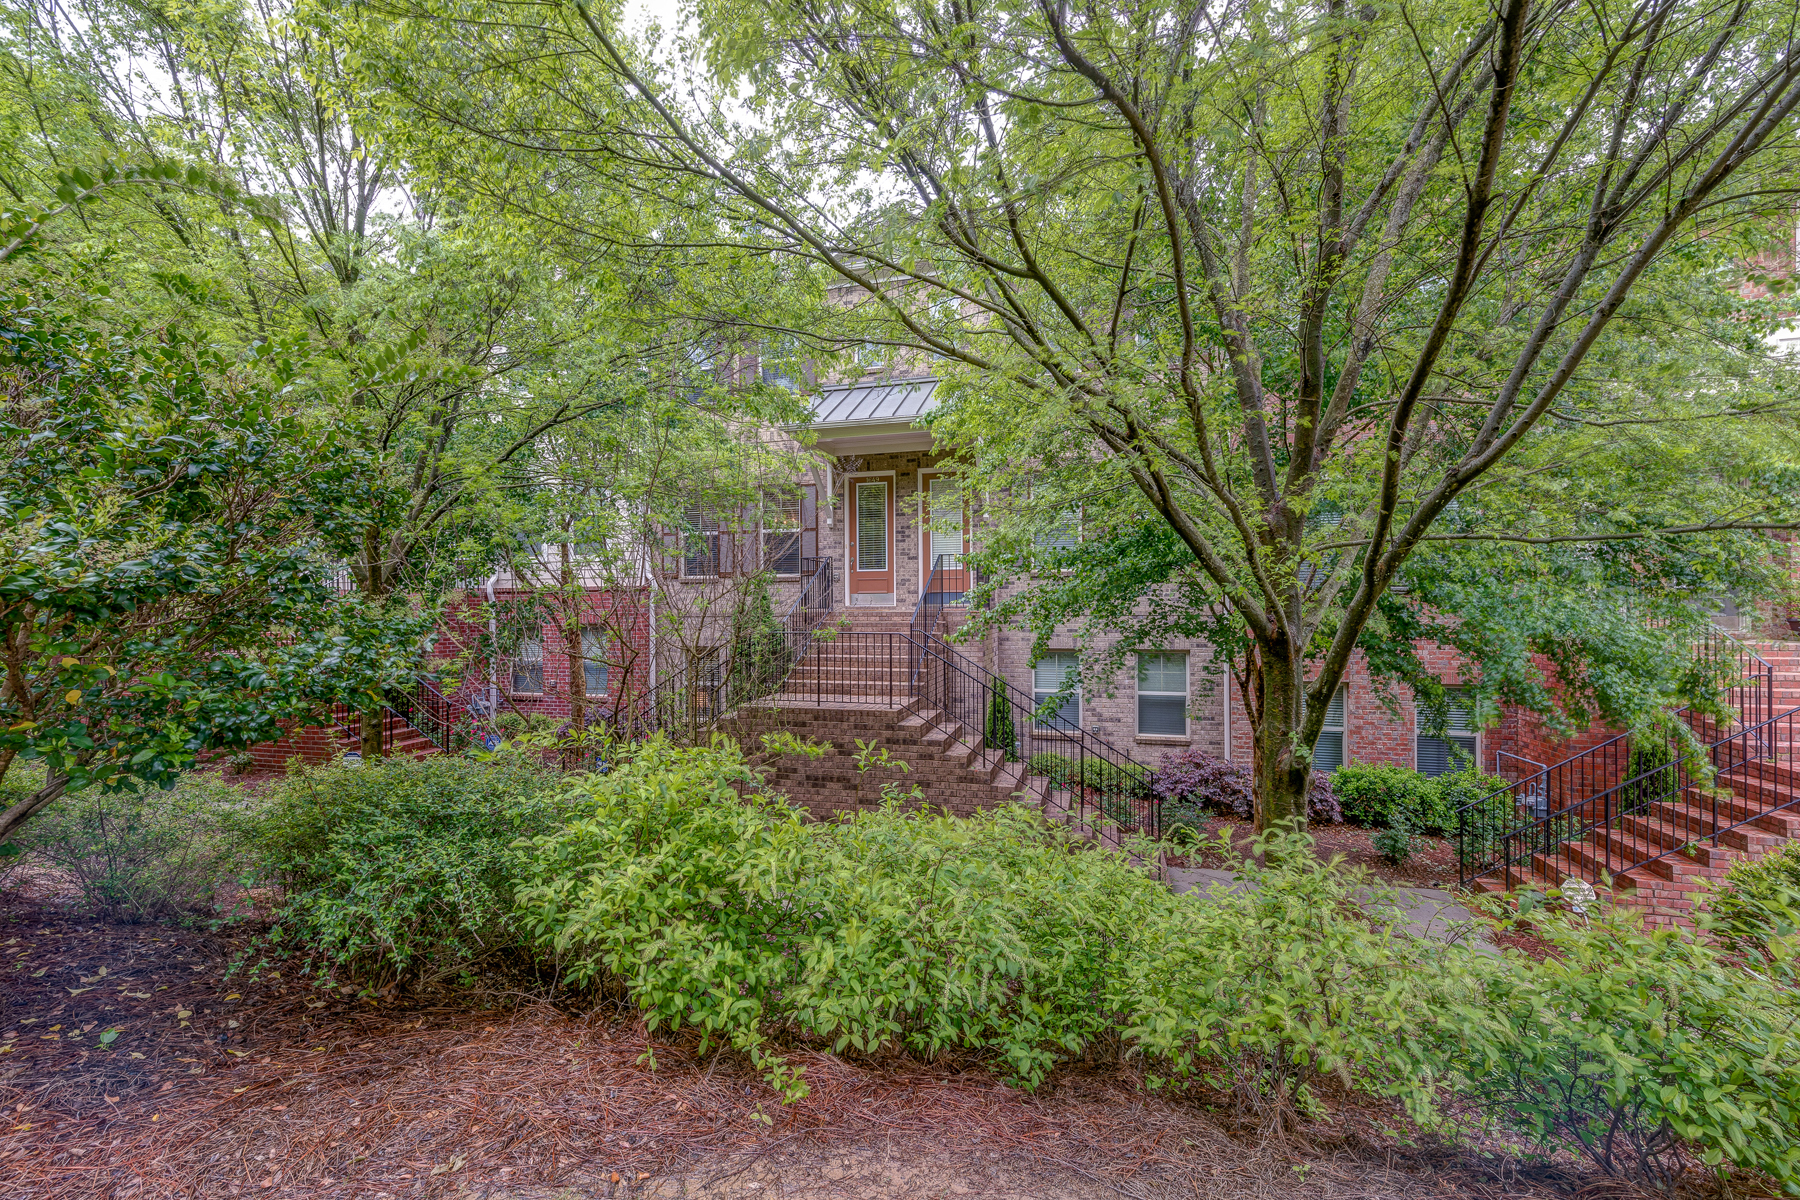 Townhouse for Sale at Tree Lined Entrance to a 3 Bed and 3.5 Bath Townhome in Gated Community 1649 Sabastian Point NE Atlanta, Georgia 30329 United States